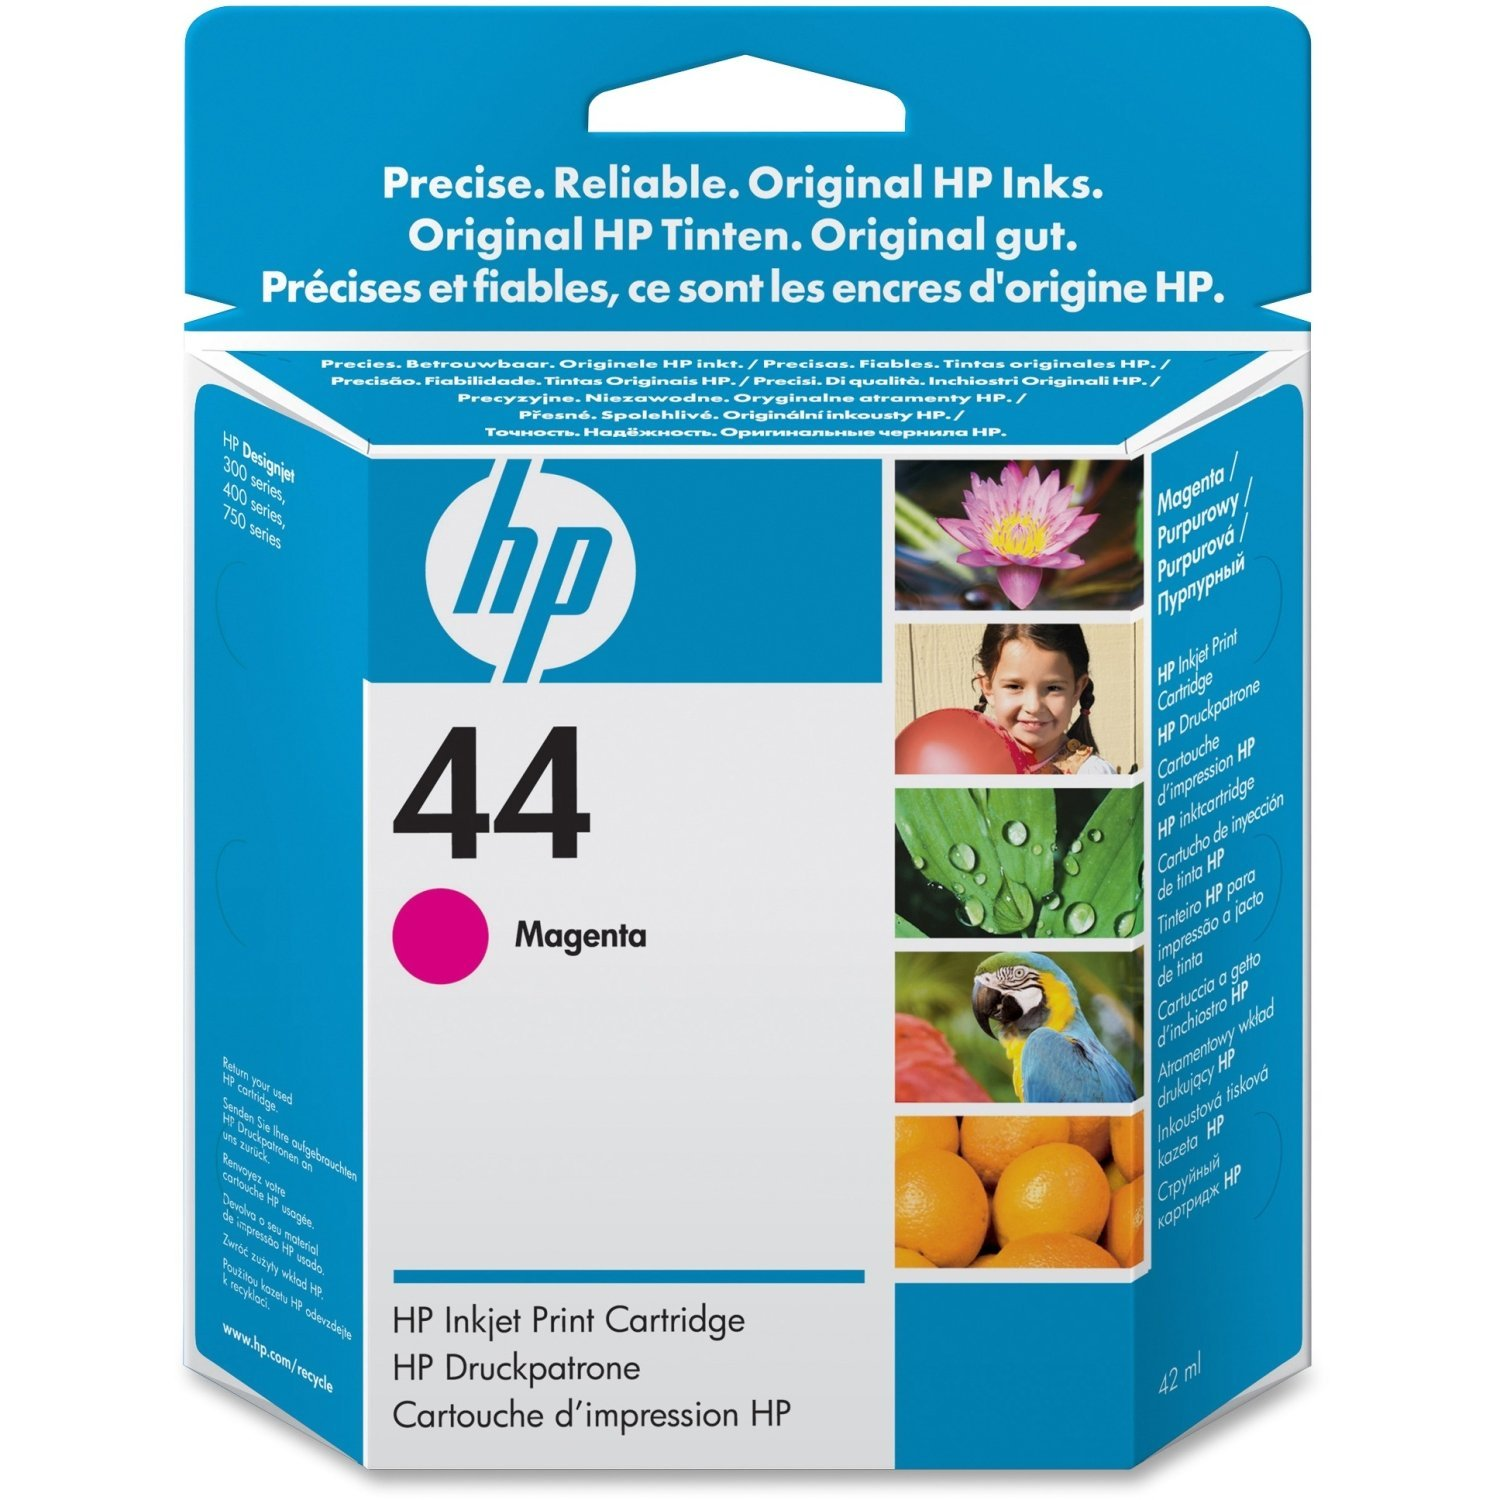 HP Products - HP - 51644M (HP 44) Ink, 1600 Page-Yield, Magenta - Sold As 1 Each - Fade- and smudge-resistant ink. - Colors for high-impact prints. - Visible ink-level indicator warns when ink is low. - Specially designed to work on a variety of HP Designjet printing material. -